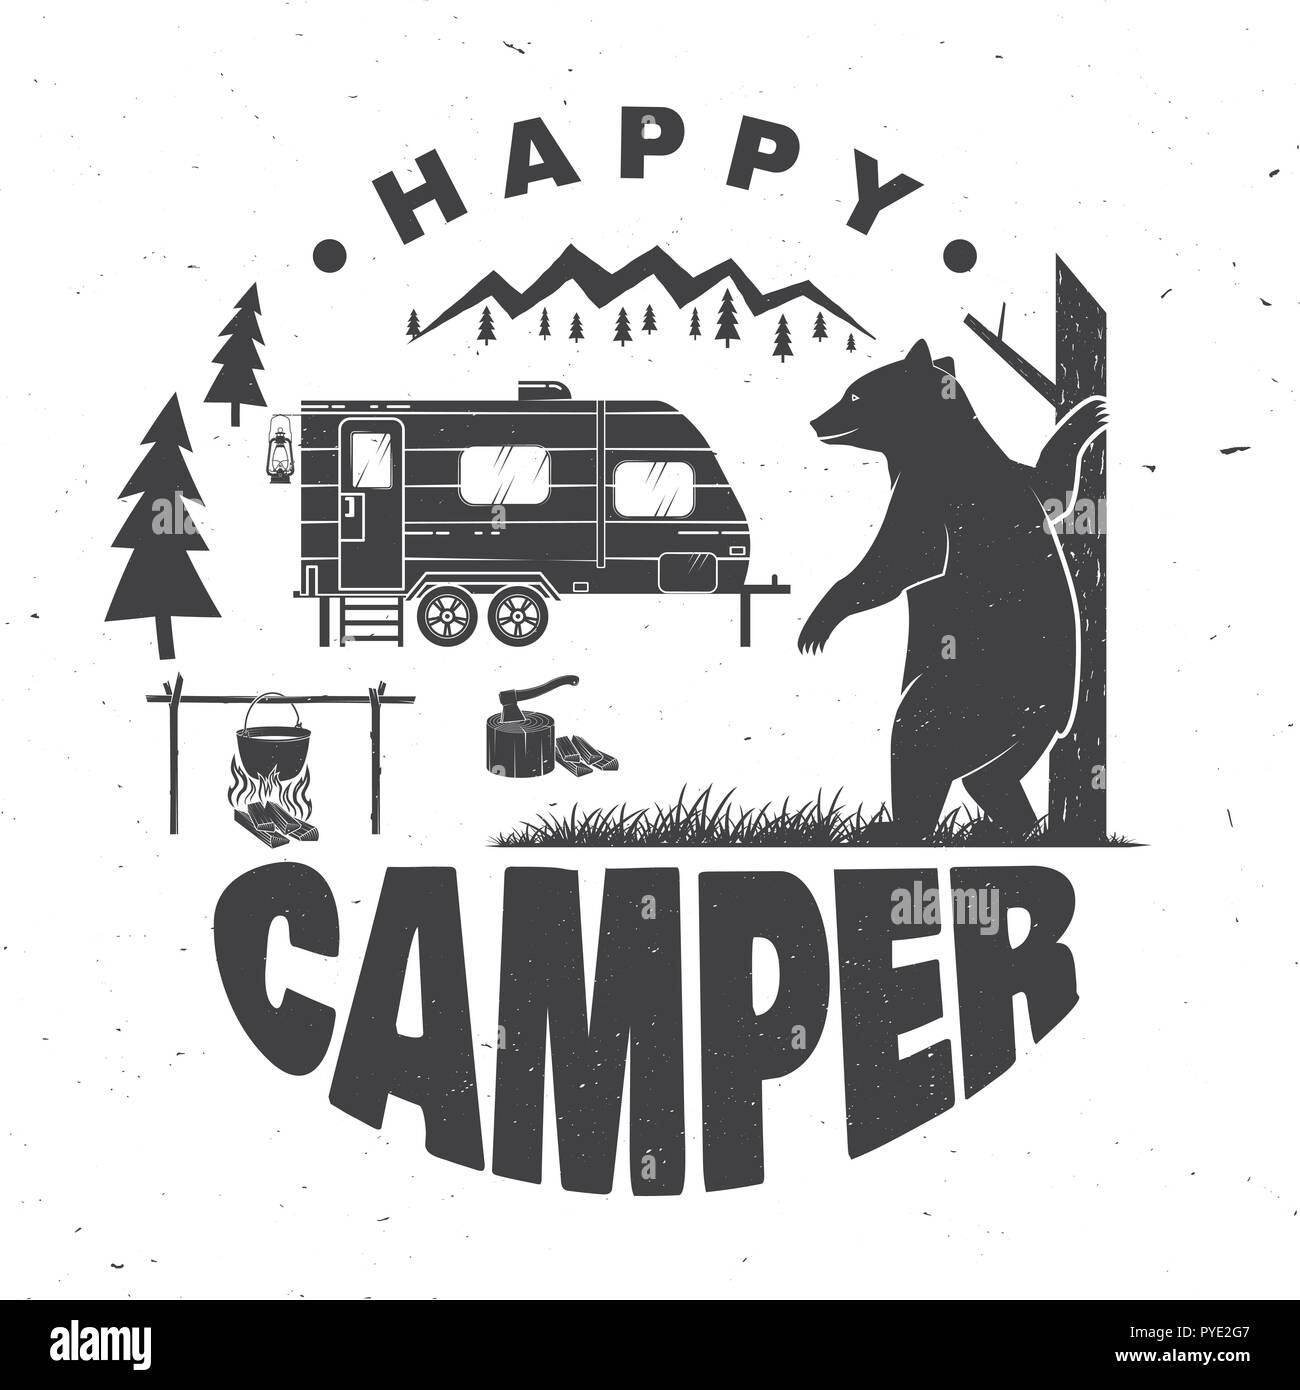 Happy camper. Vector illustration. Concept for shirt or logo, print, stamp or tee. Vintage typography design with camping trailer, bear, campfire and forest silhouette. - Stock Image